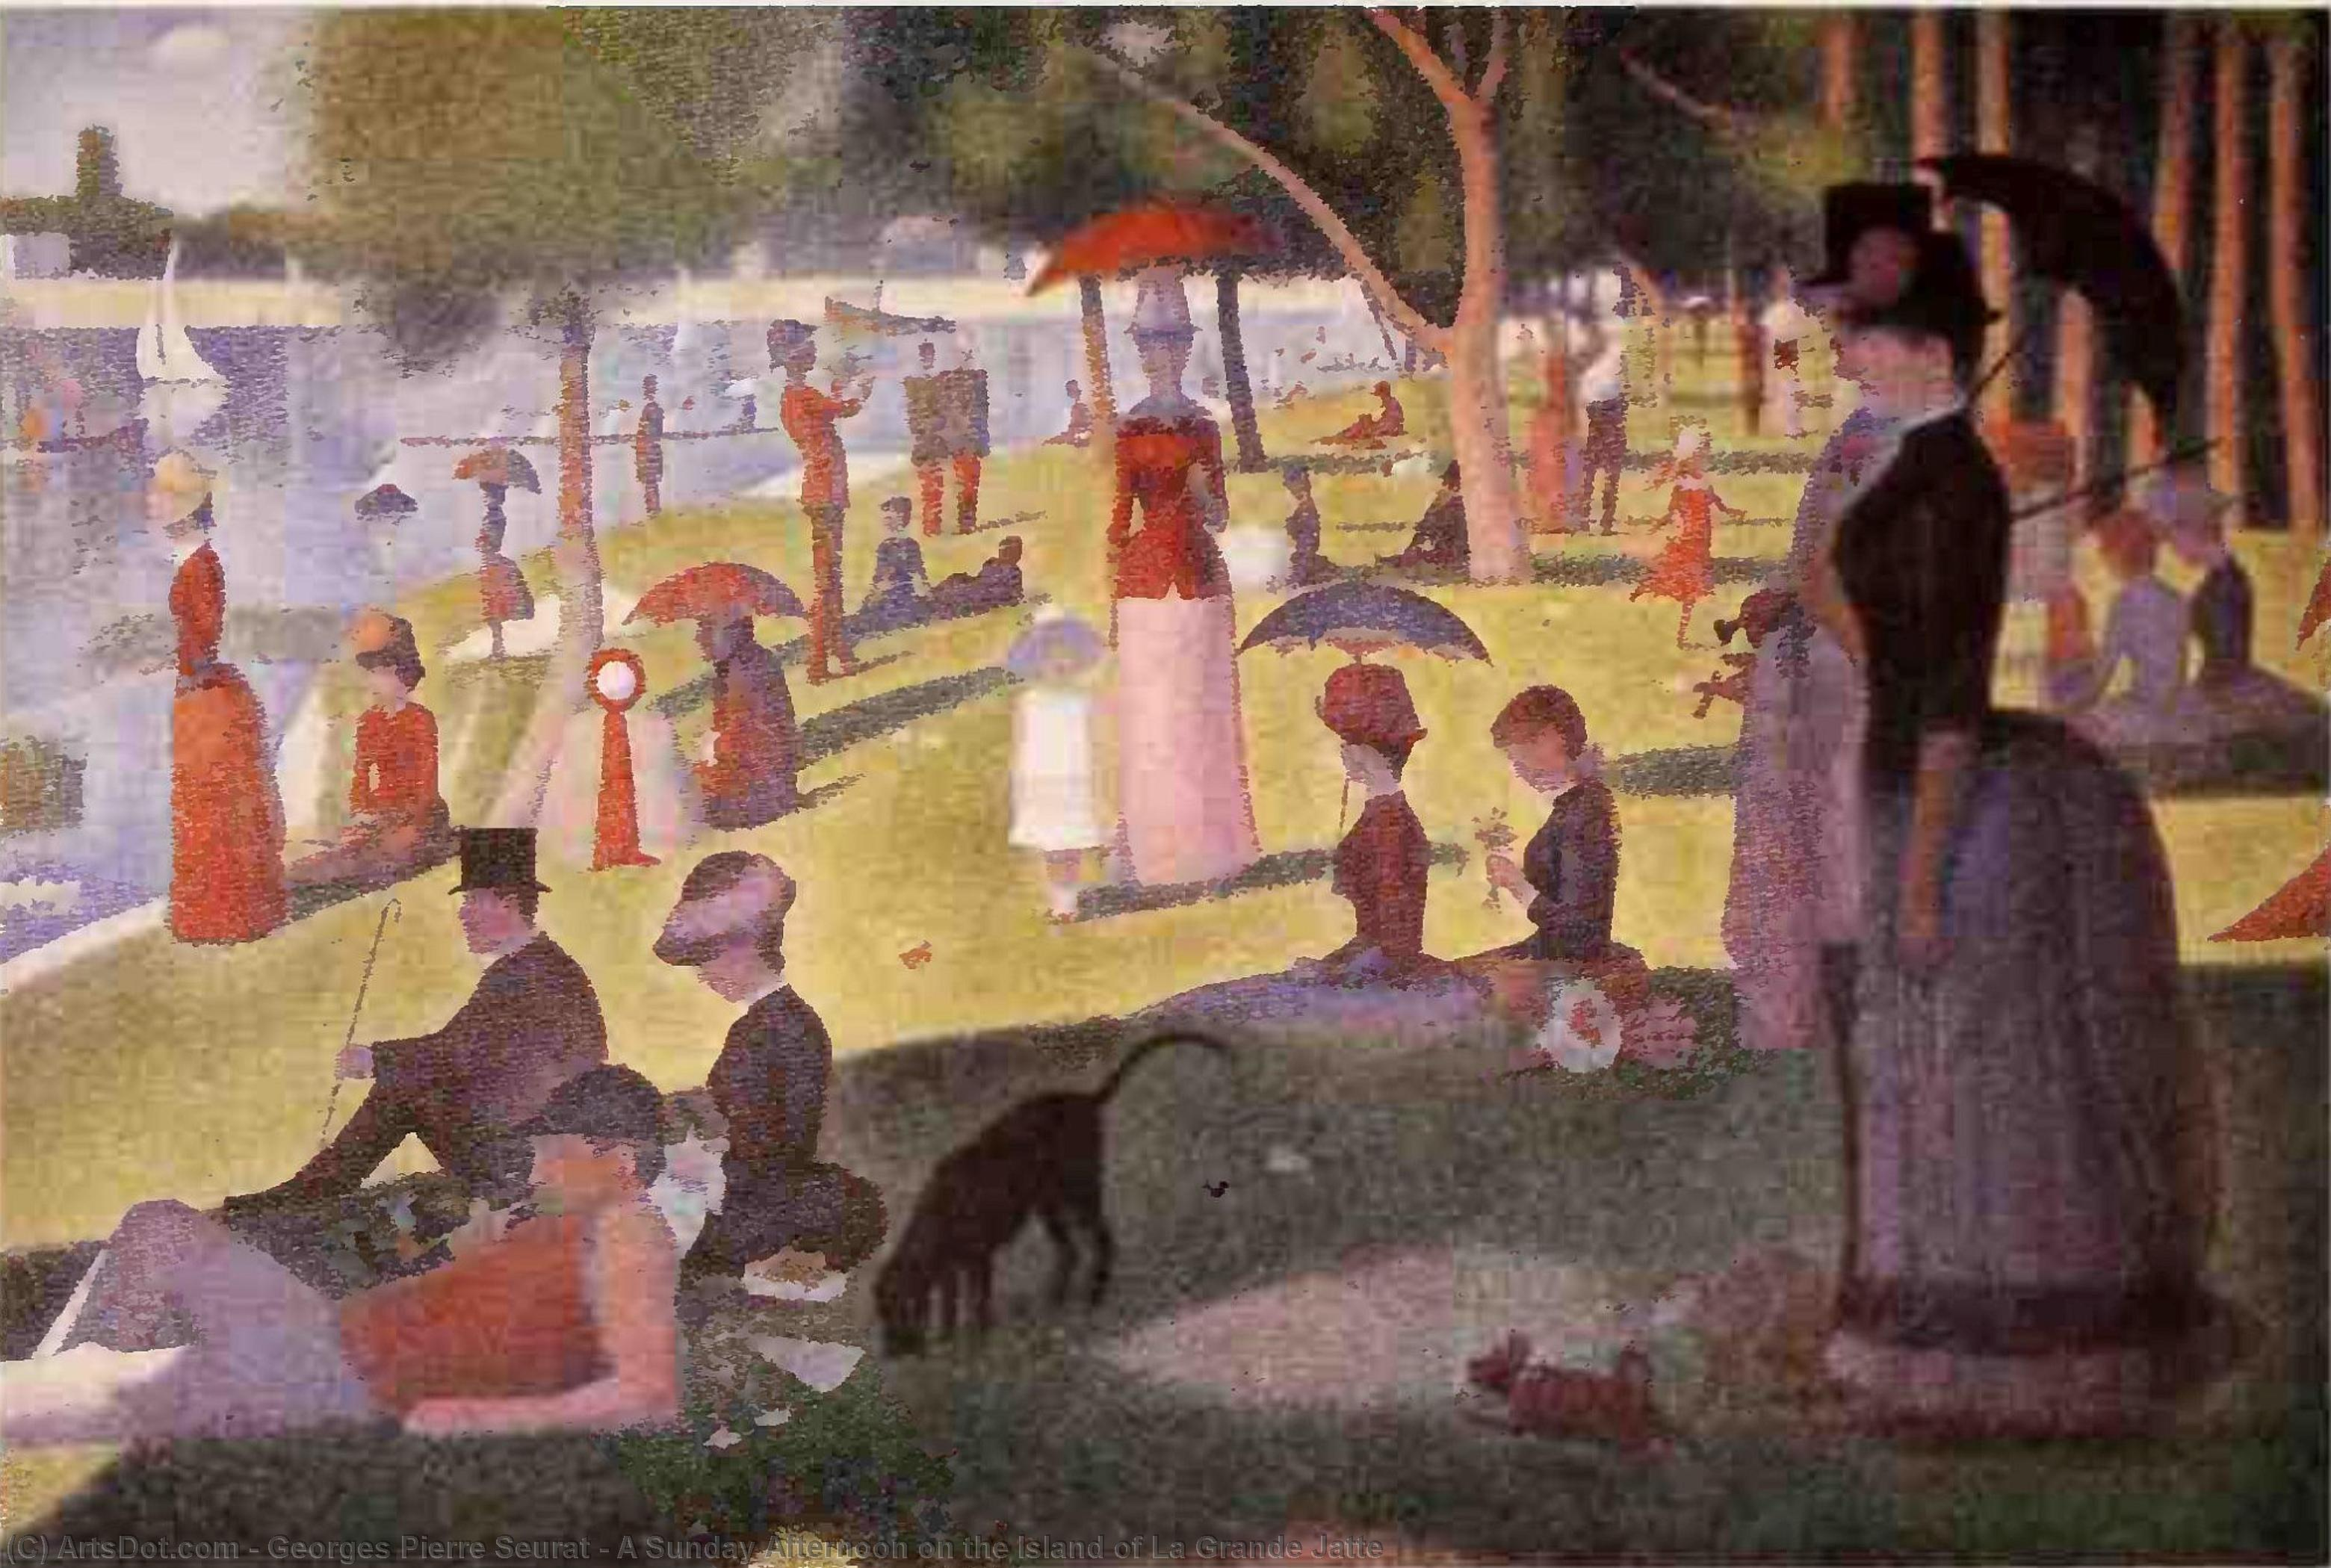 WikiOO.org - Enciklopedija dailės - Tapyba, meno kuriniai Georges Pierre Seurat - A Sunday Afternoon on the Island of La Grande Jatte